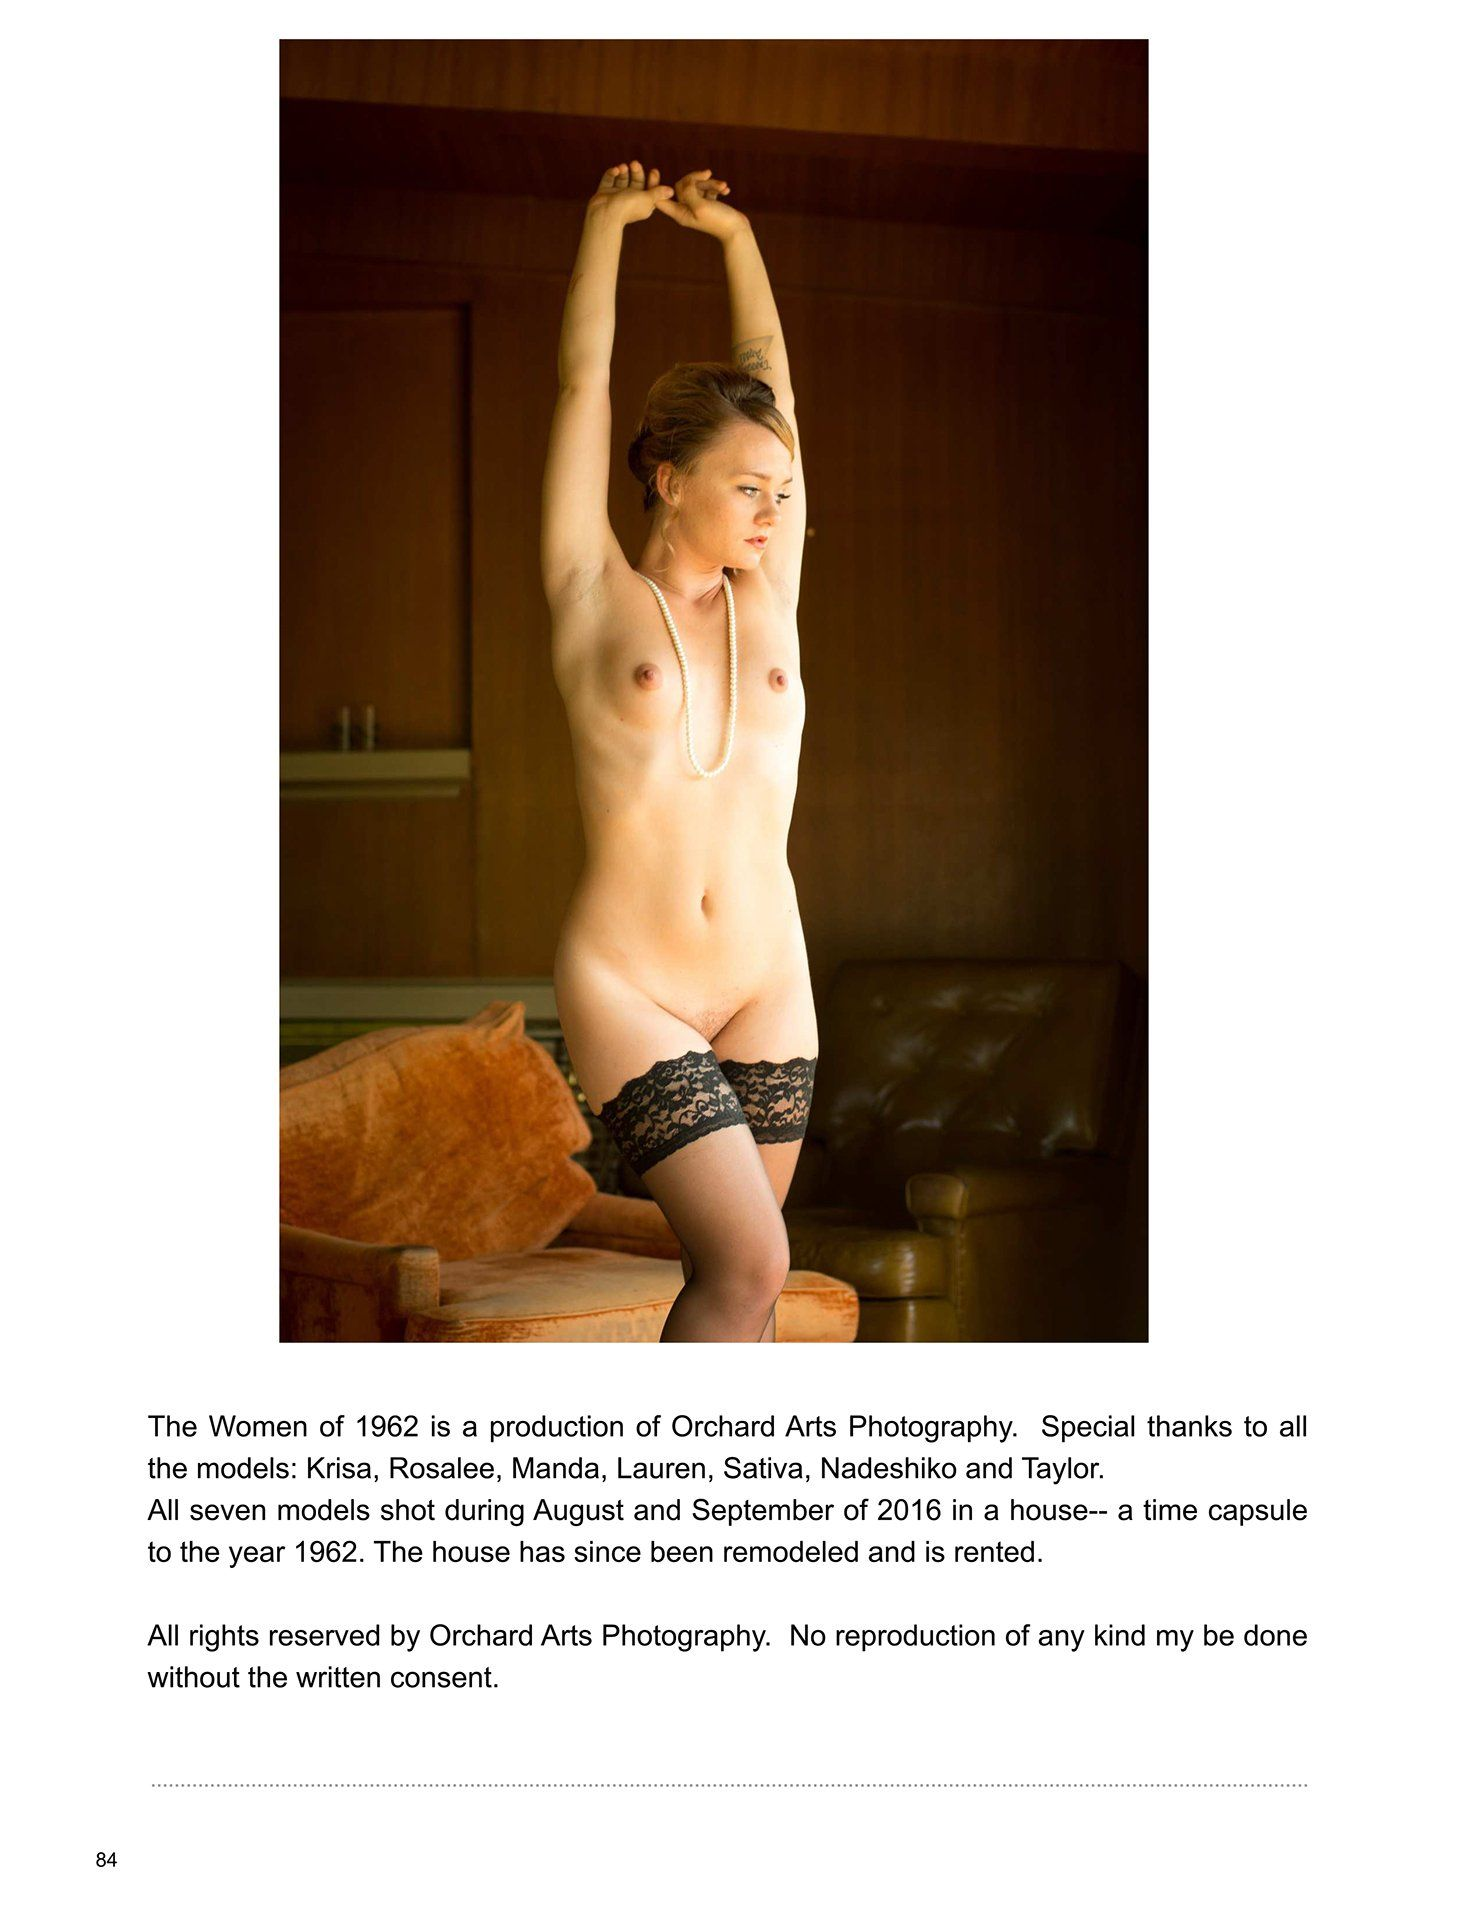 Amazon Women Nude Pics nude edition available ofthe women of 1962: a mad men era